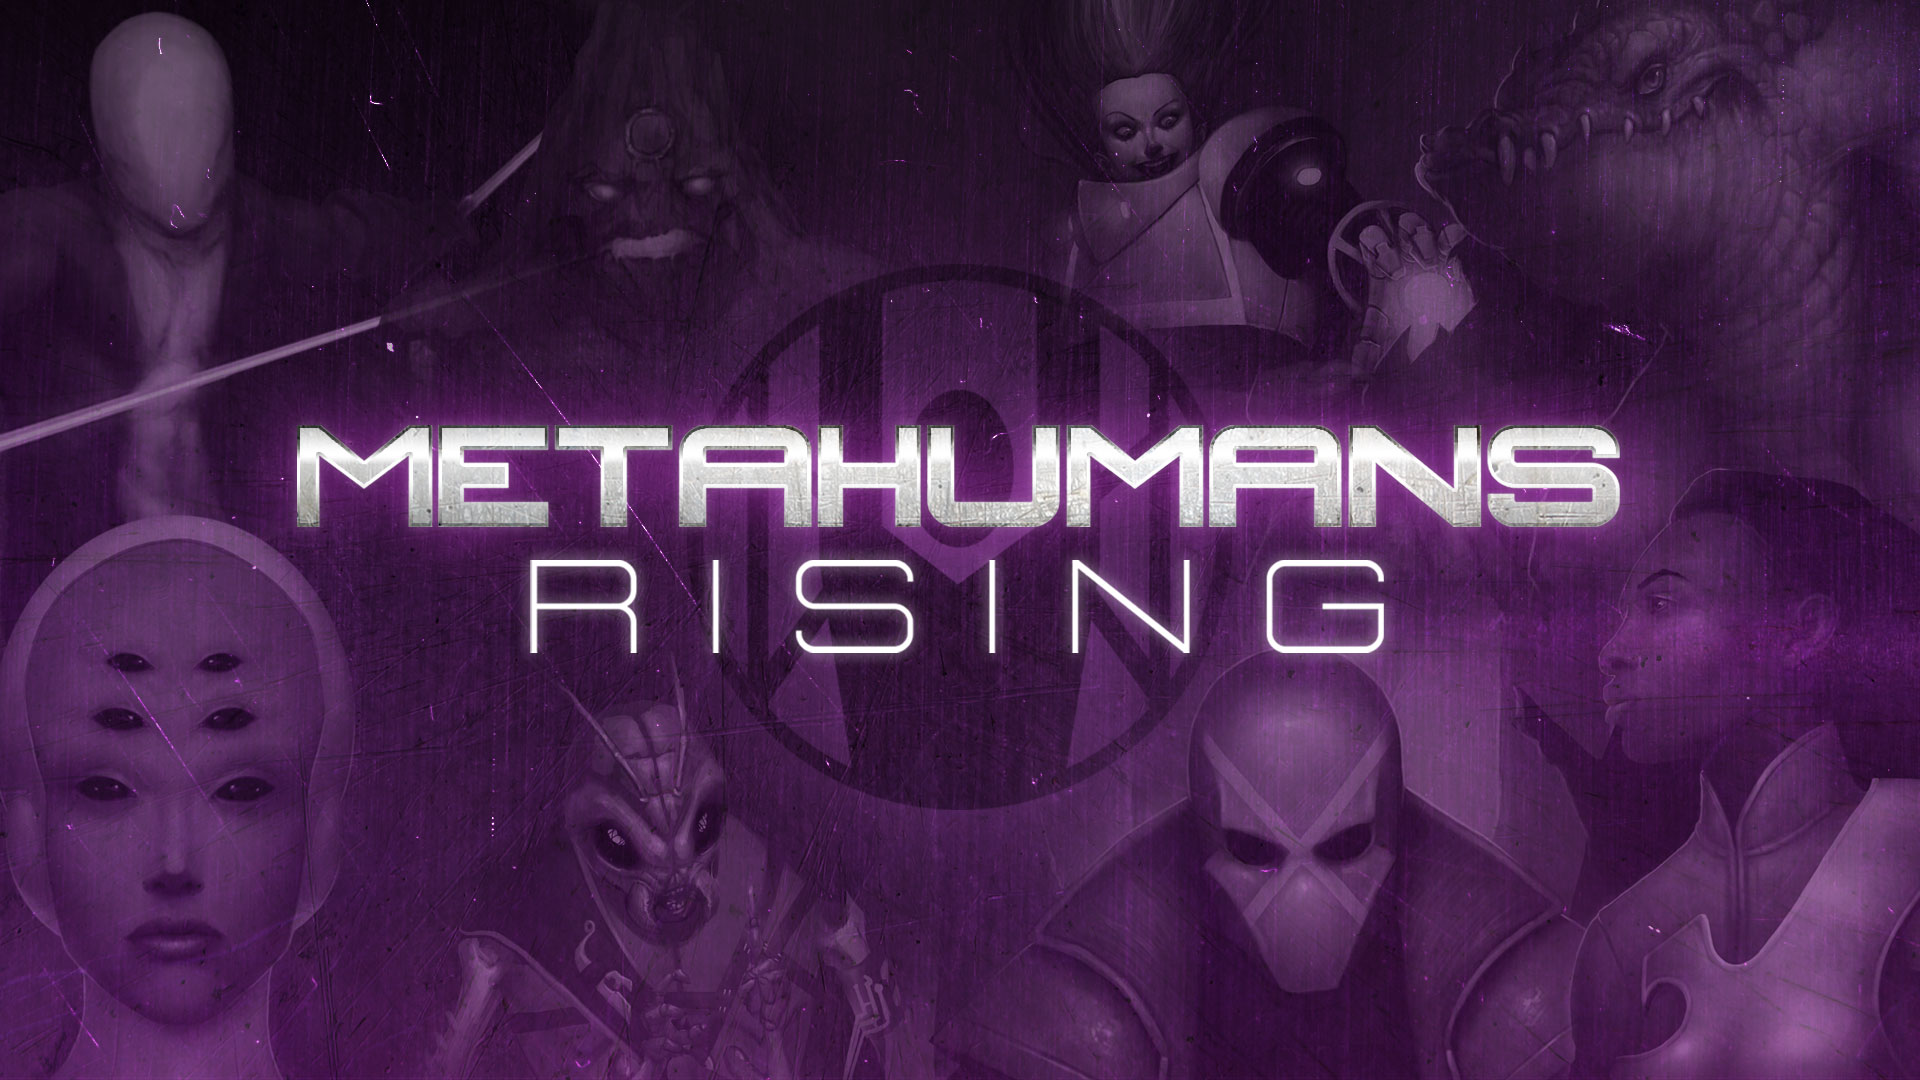 Metahumans Rising Kickstarter